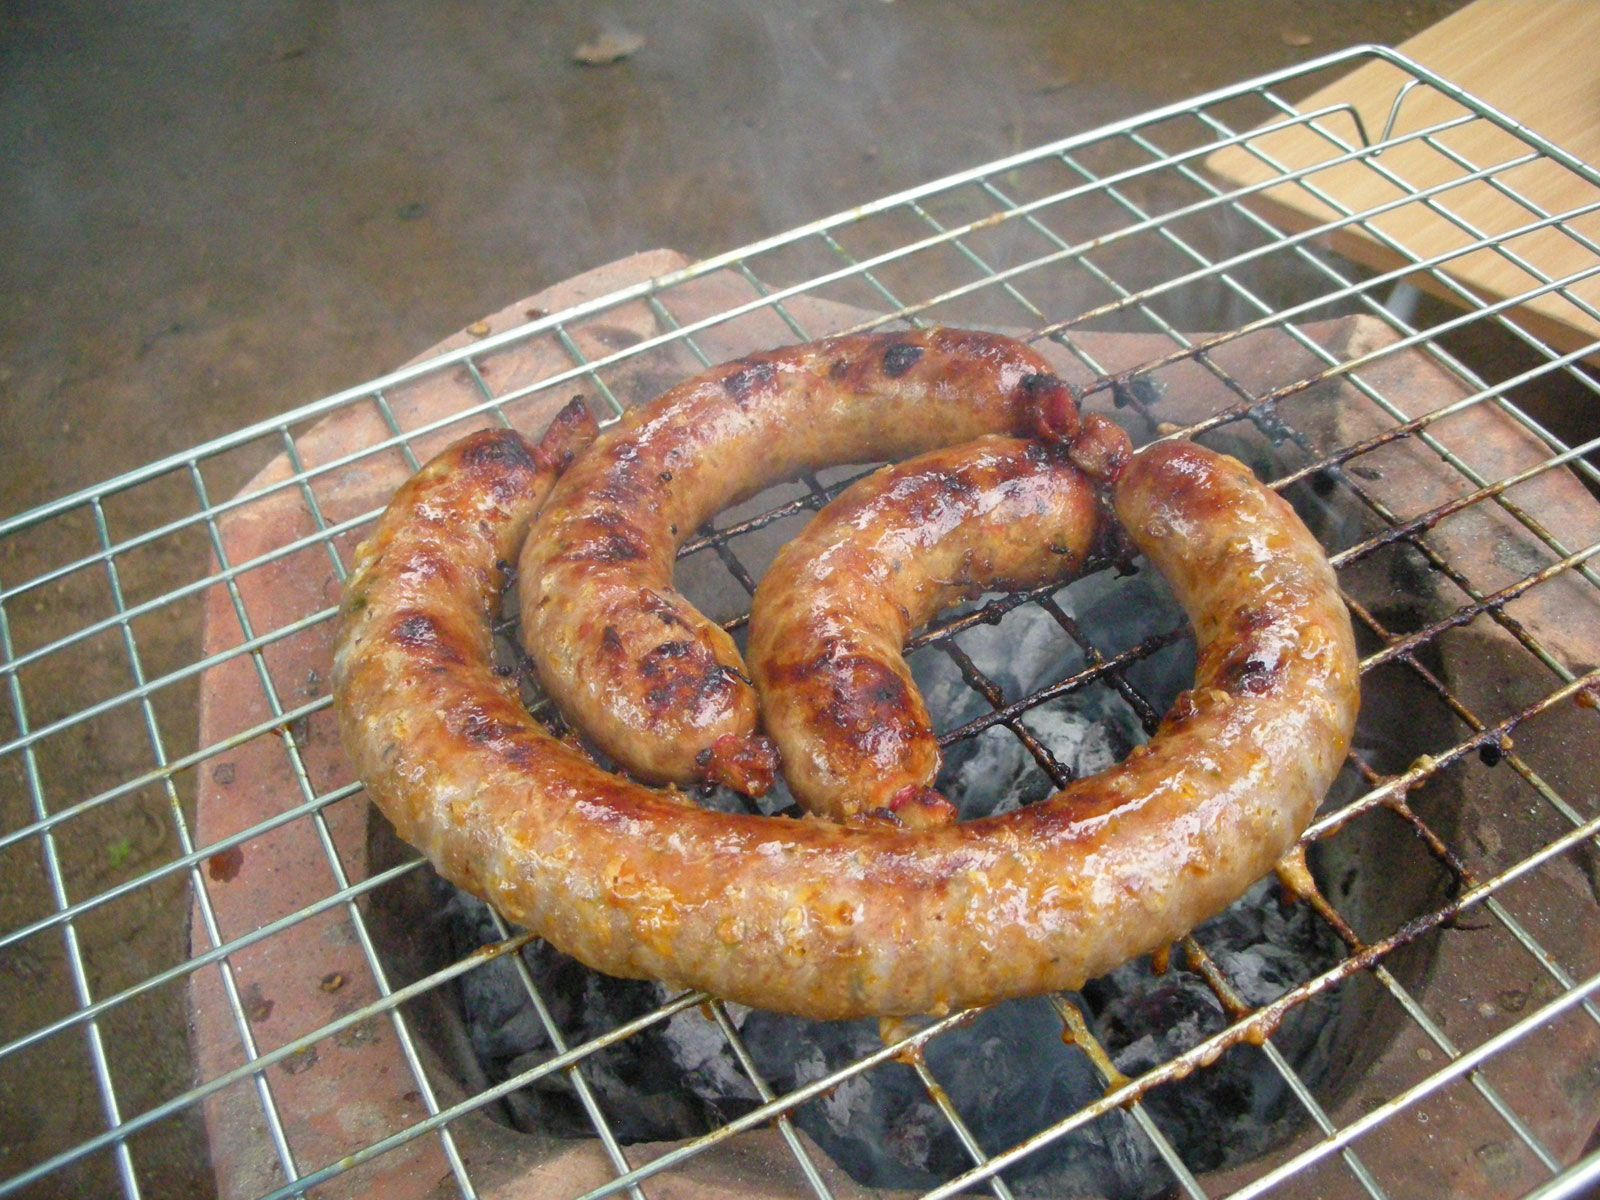 Authentic Thai recipe for Northern Thai Sausage, 'Sai Oua' from